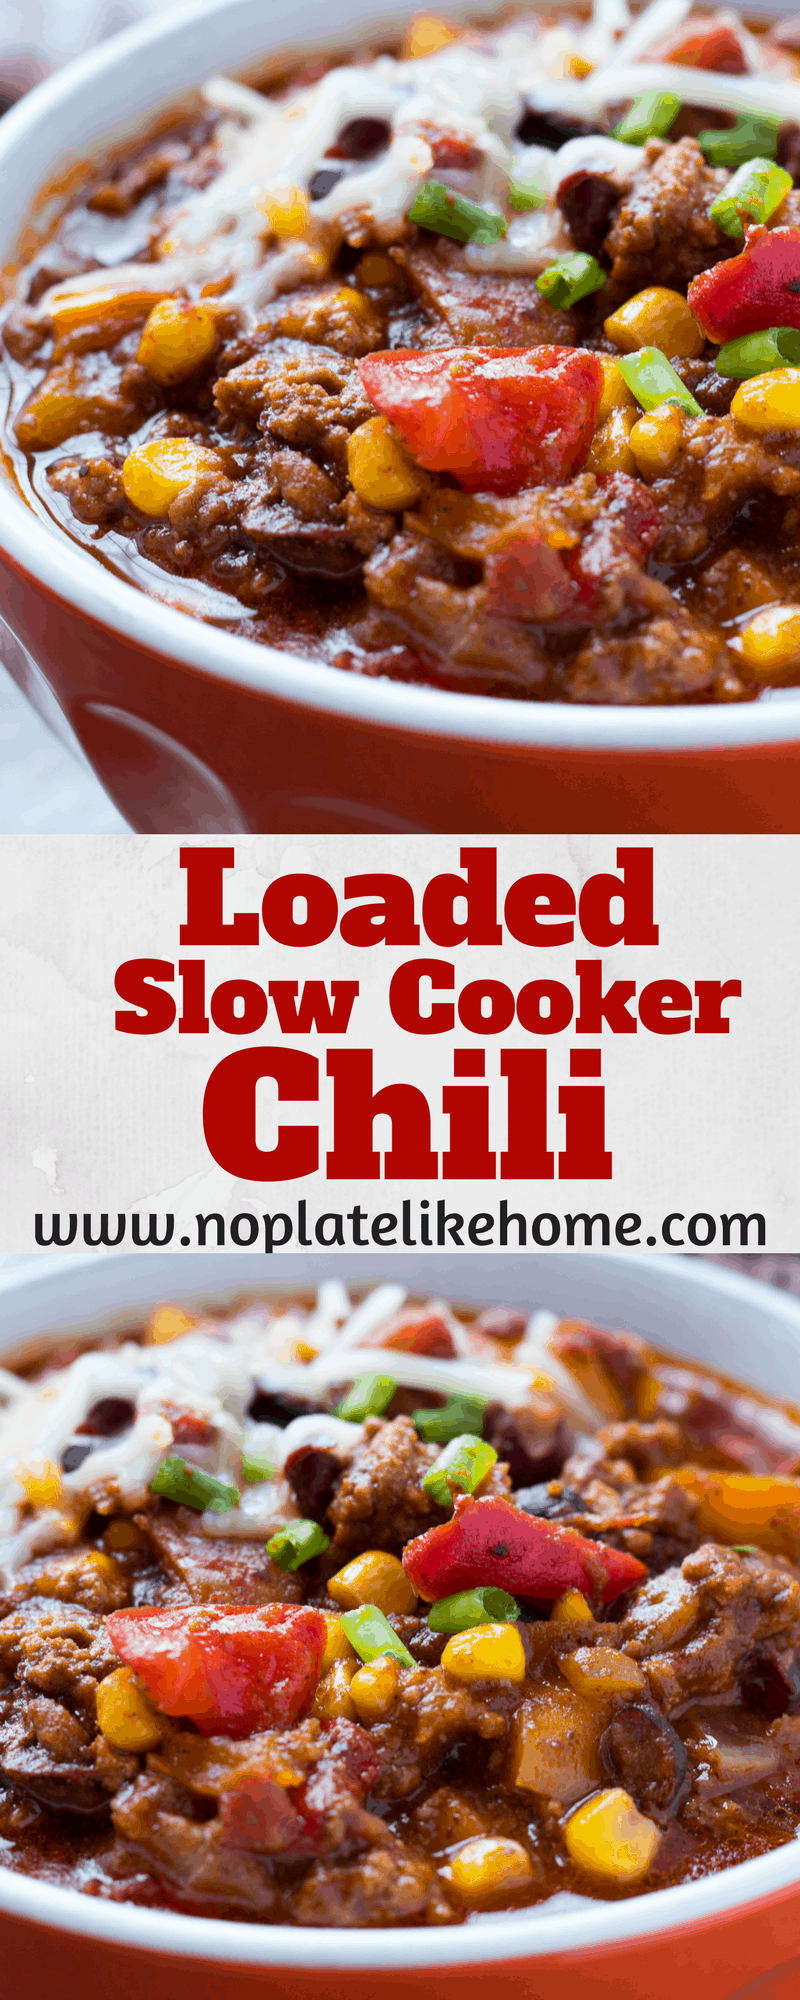 This Easy Homemade Loaded Slow Cooker Chili Recipe Is Loaded With Ground Beef Black Beans Sea Slow Cooker Chili Recipe Chili Recipe Turkey Slow Cooker Chili